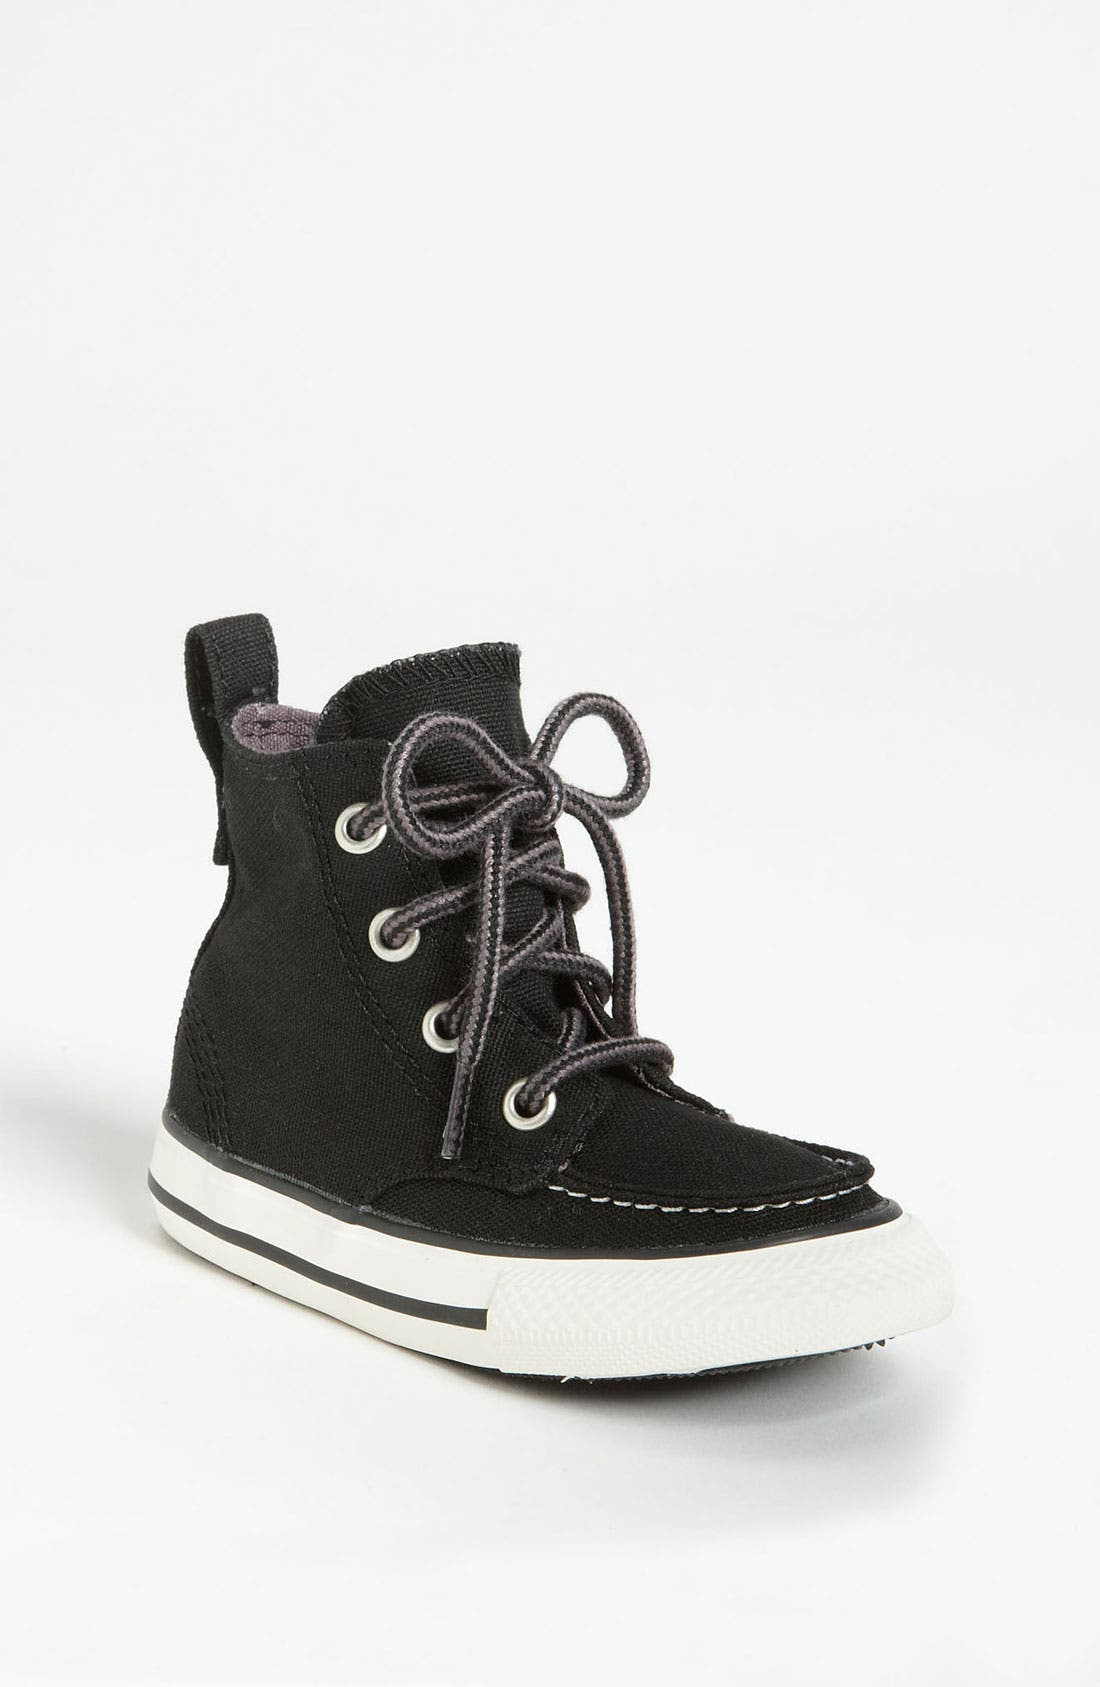 Main Image - Converse Chuck Taylor® High Top Sneaker (Baby, Walker, Toddler, Little Kid & Big Kid)